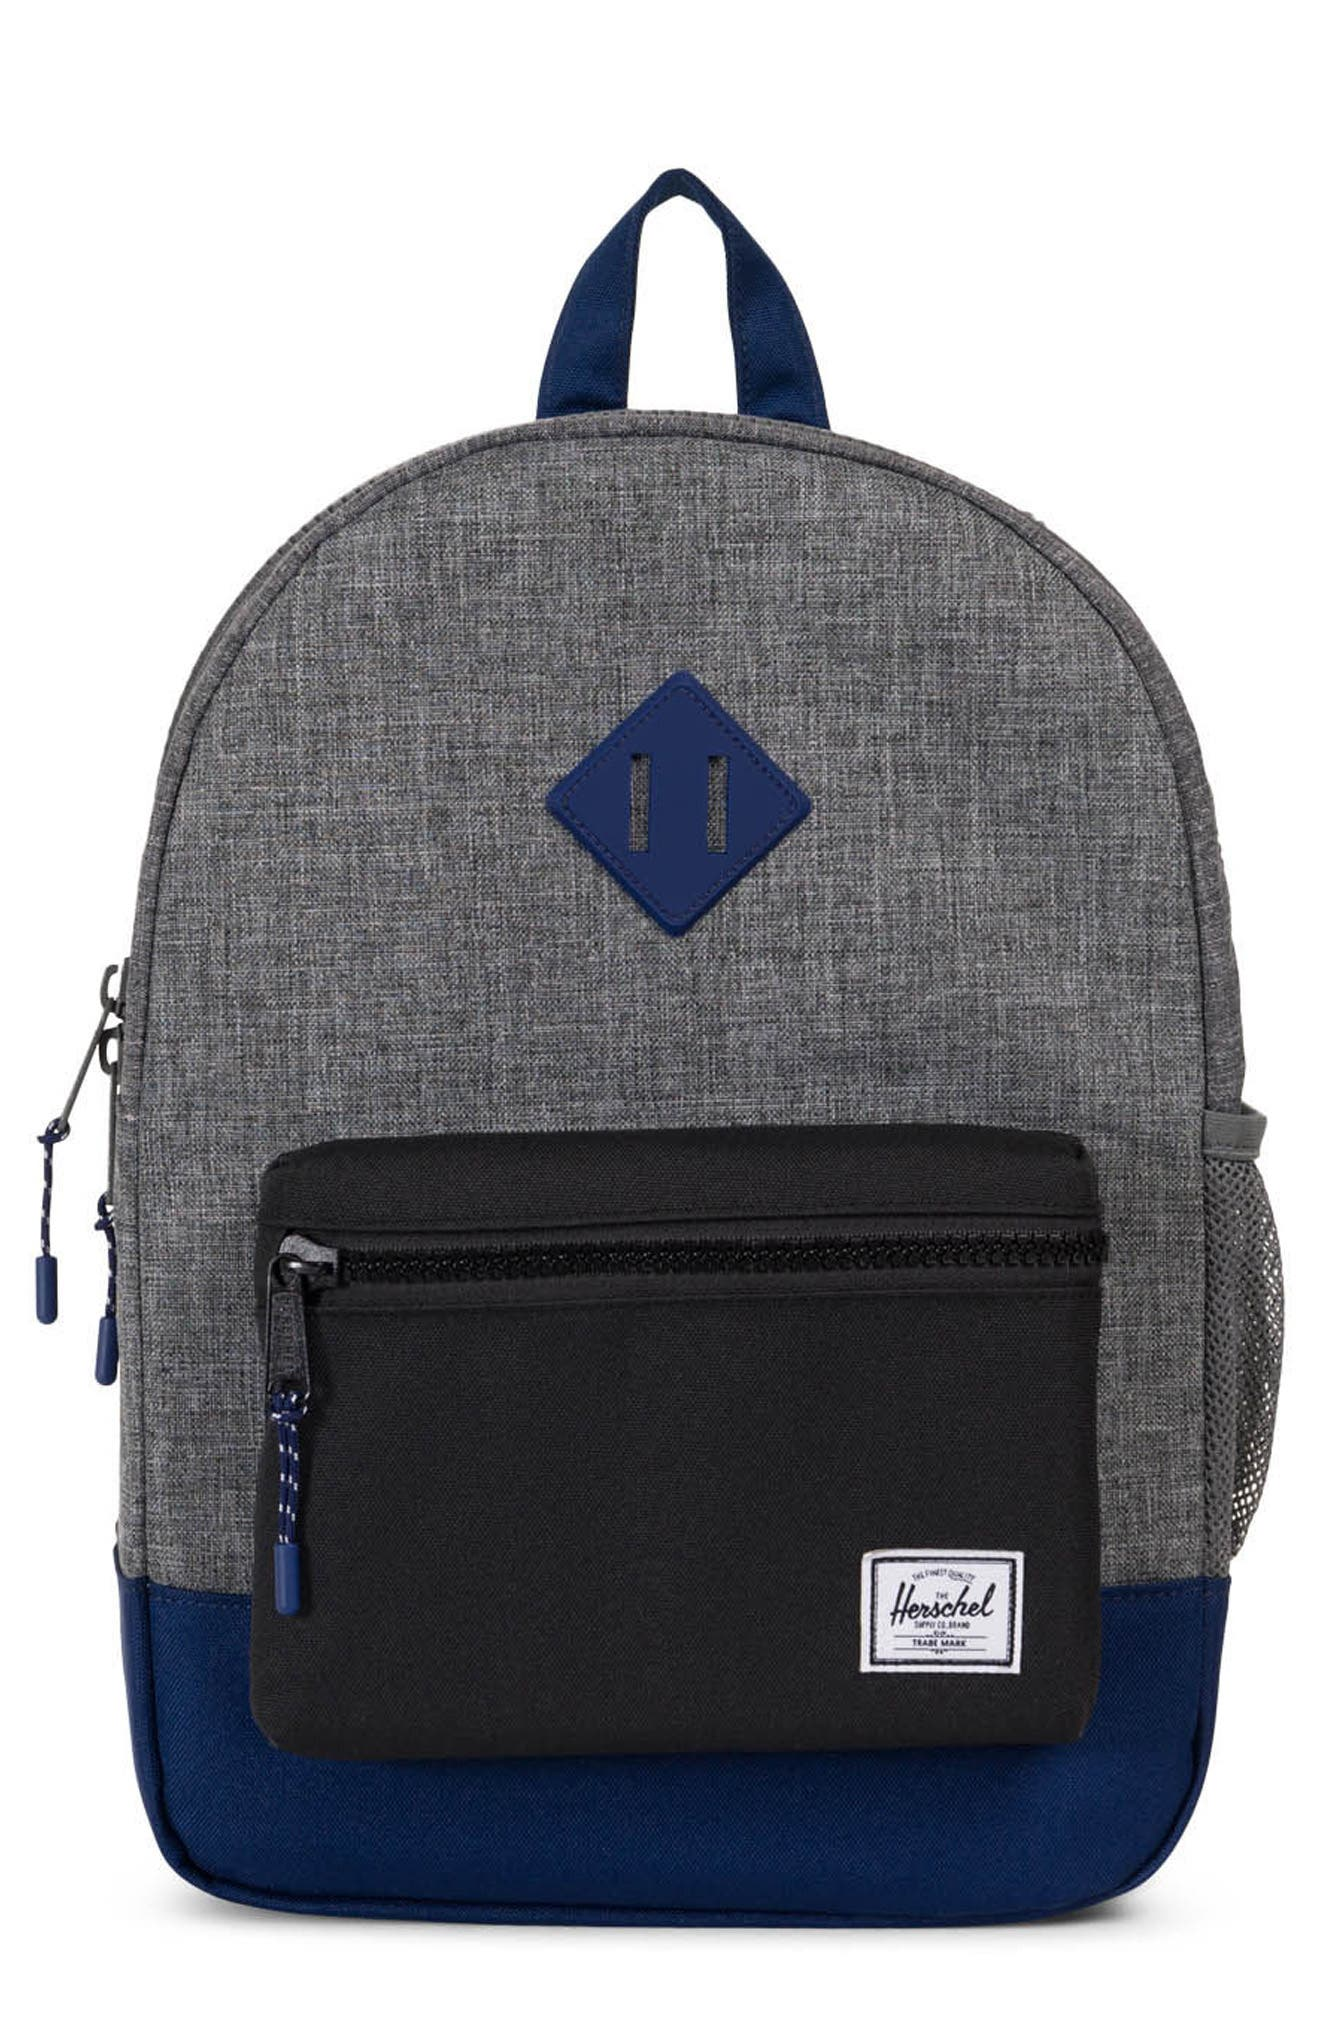 Heritage Backpack,                             Main thumbnail 1, color,                             001